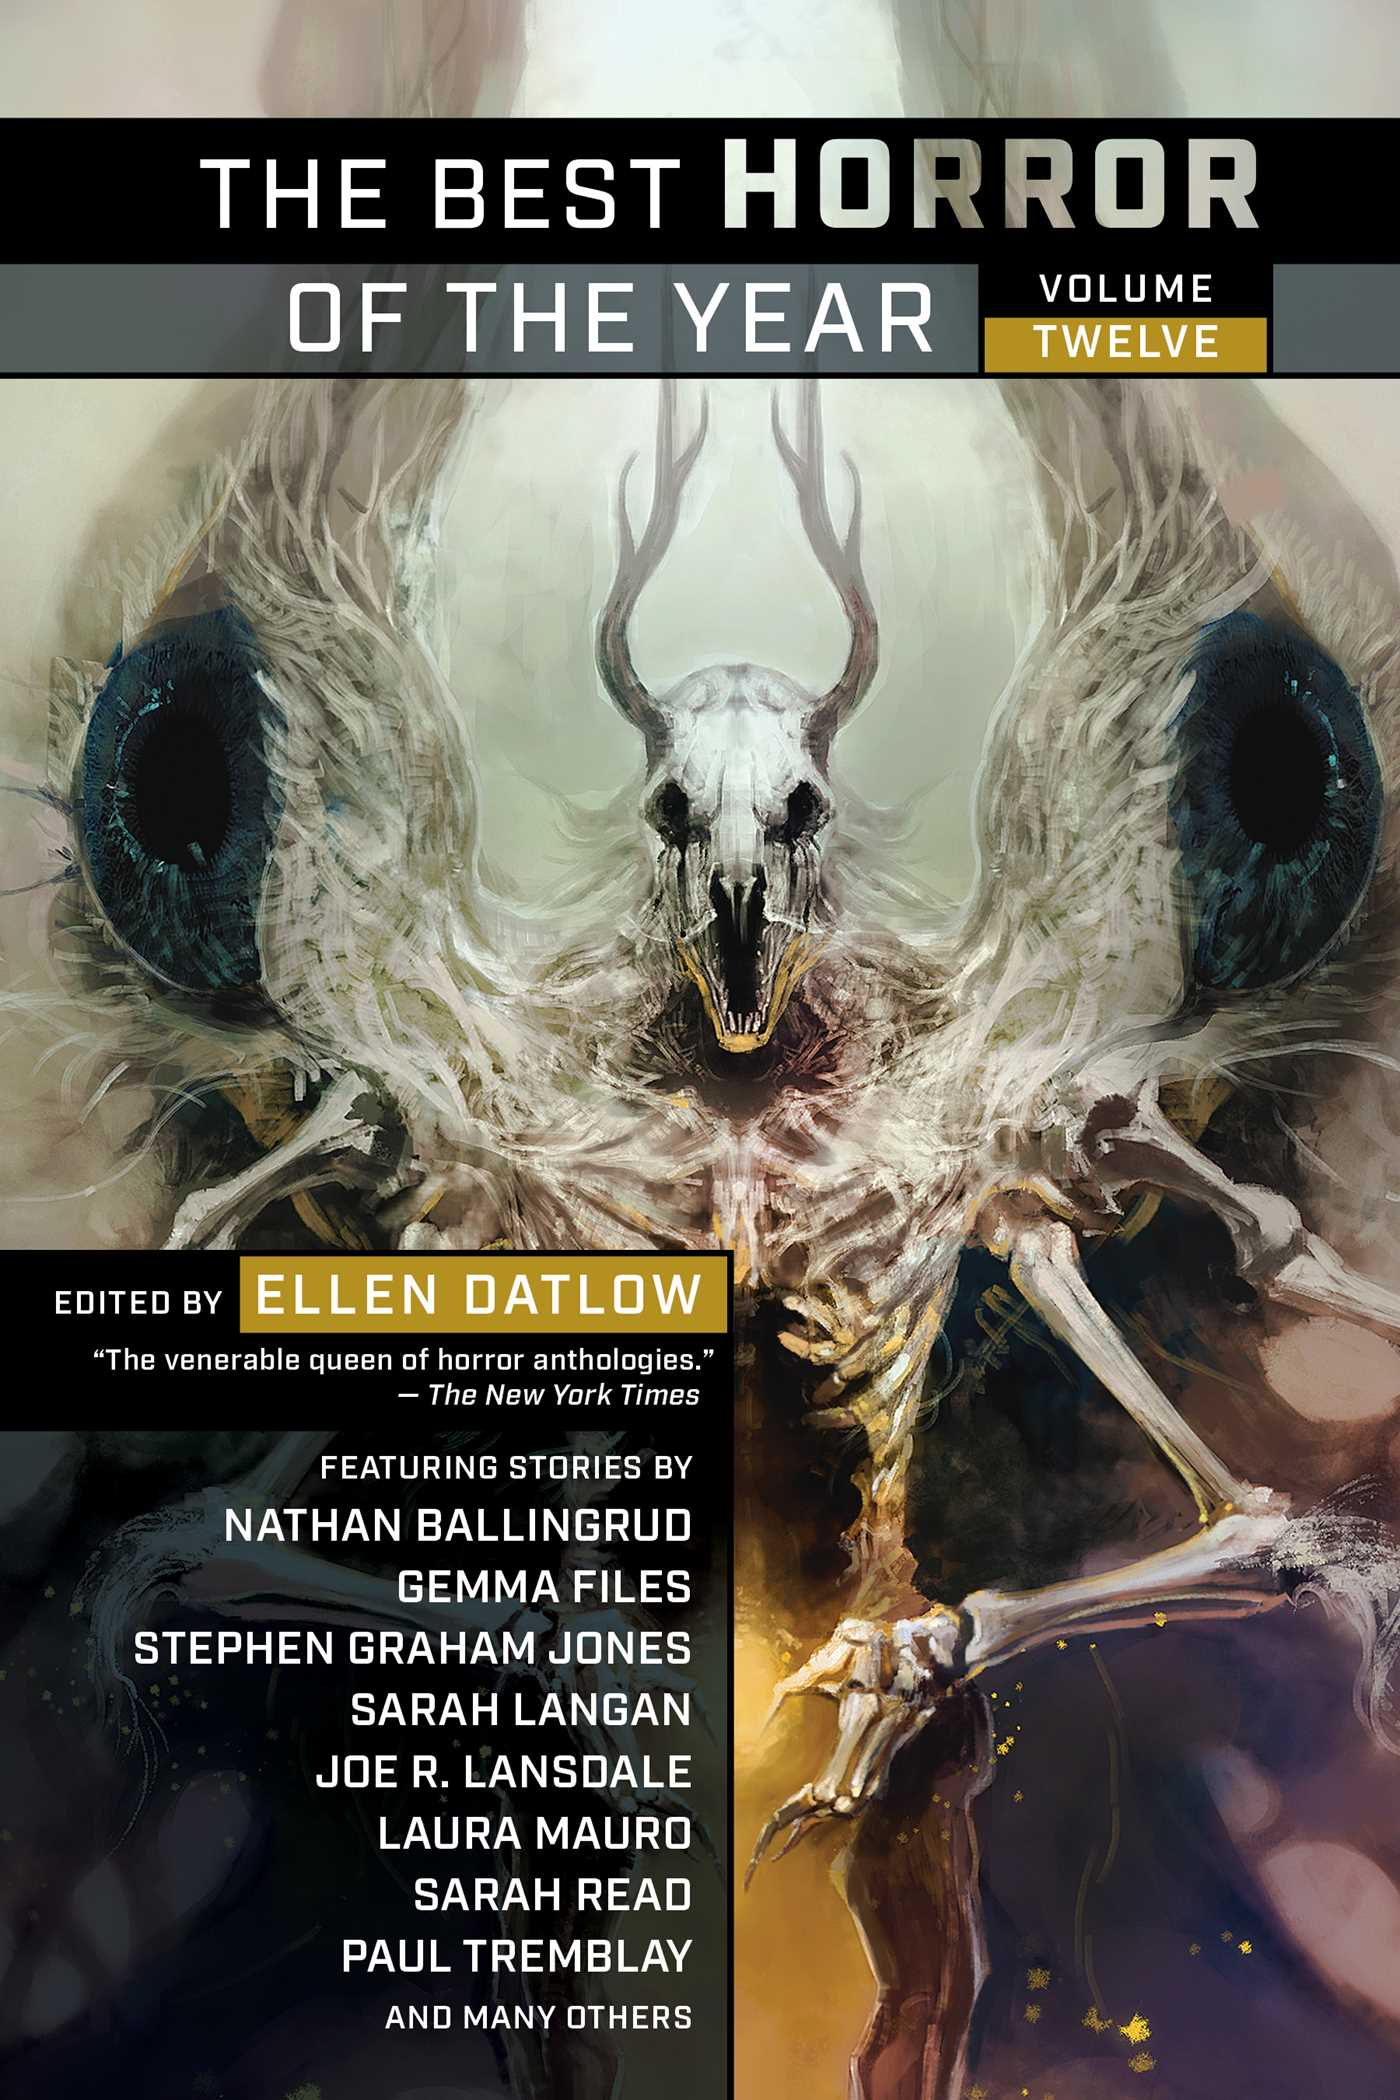 The Best Horror of the Year Volume Twelve   Book by Ellen Datlow   Official  Publisher Page   Simon & Schuster